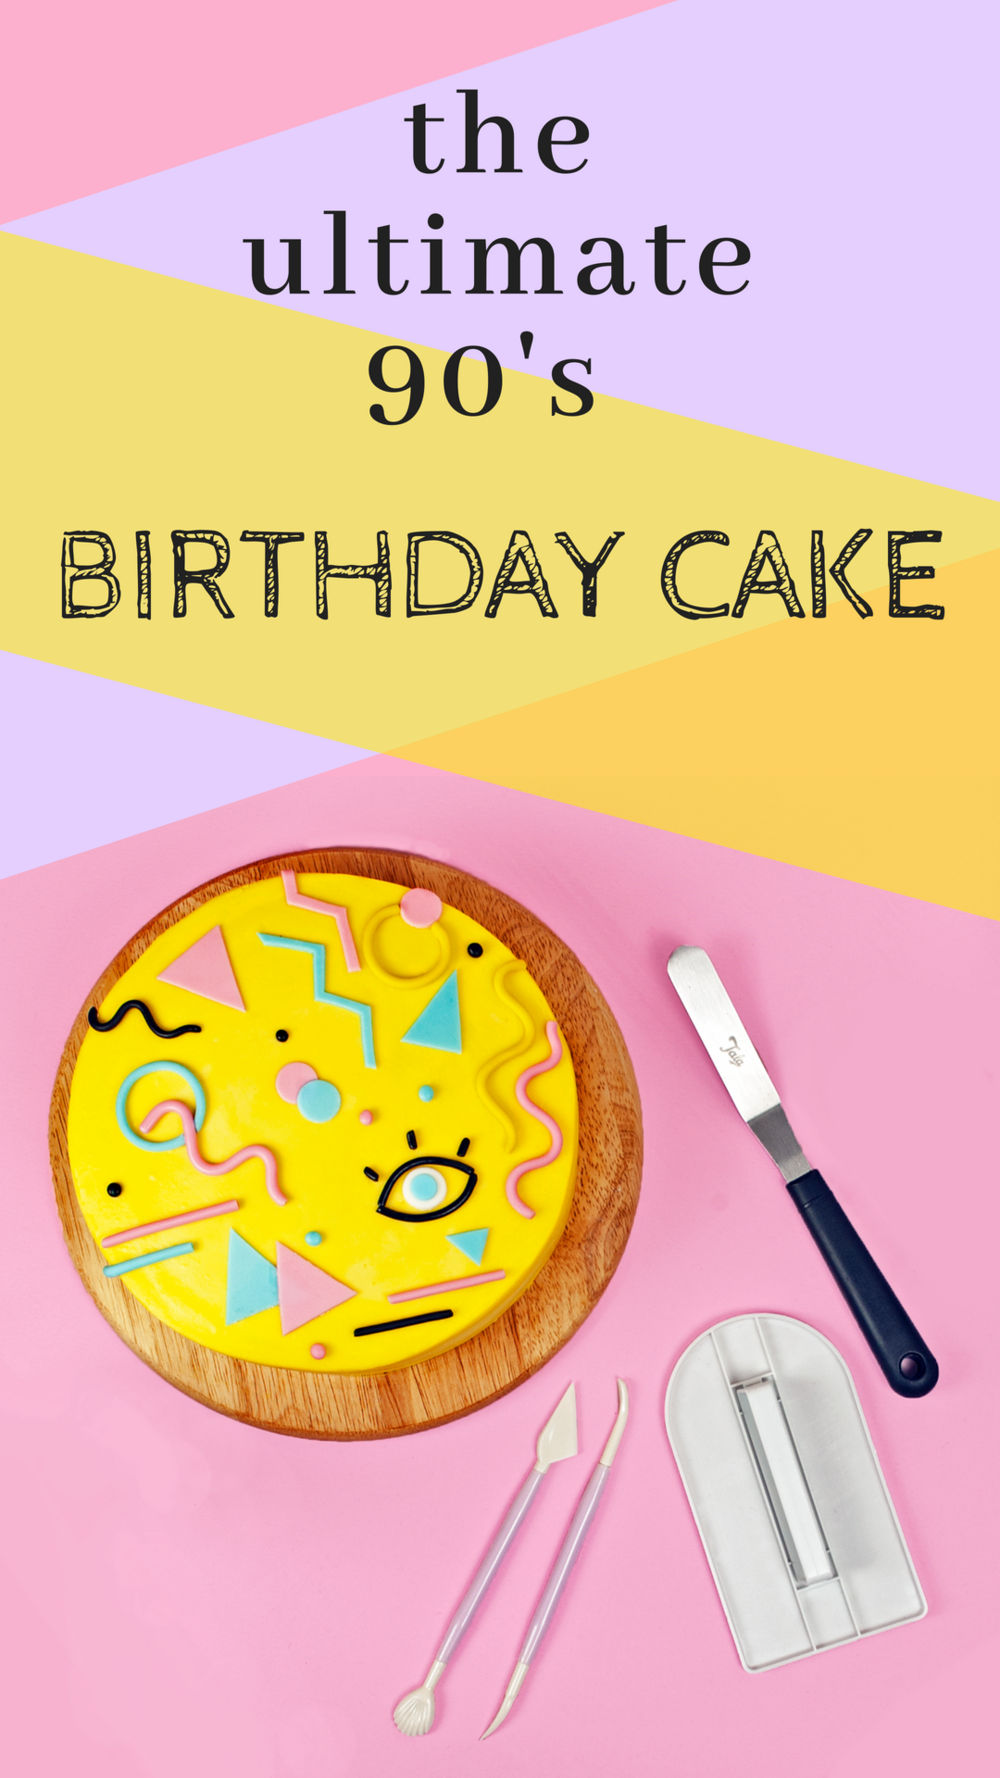 the ultimate 90's birthday cake DIY, very beginner friendly.png